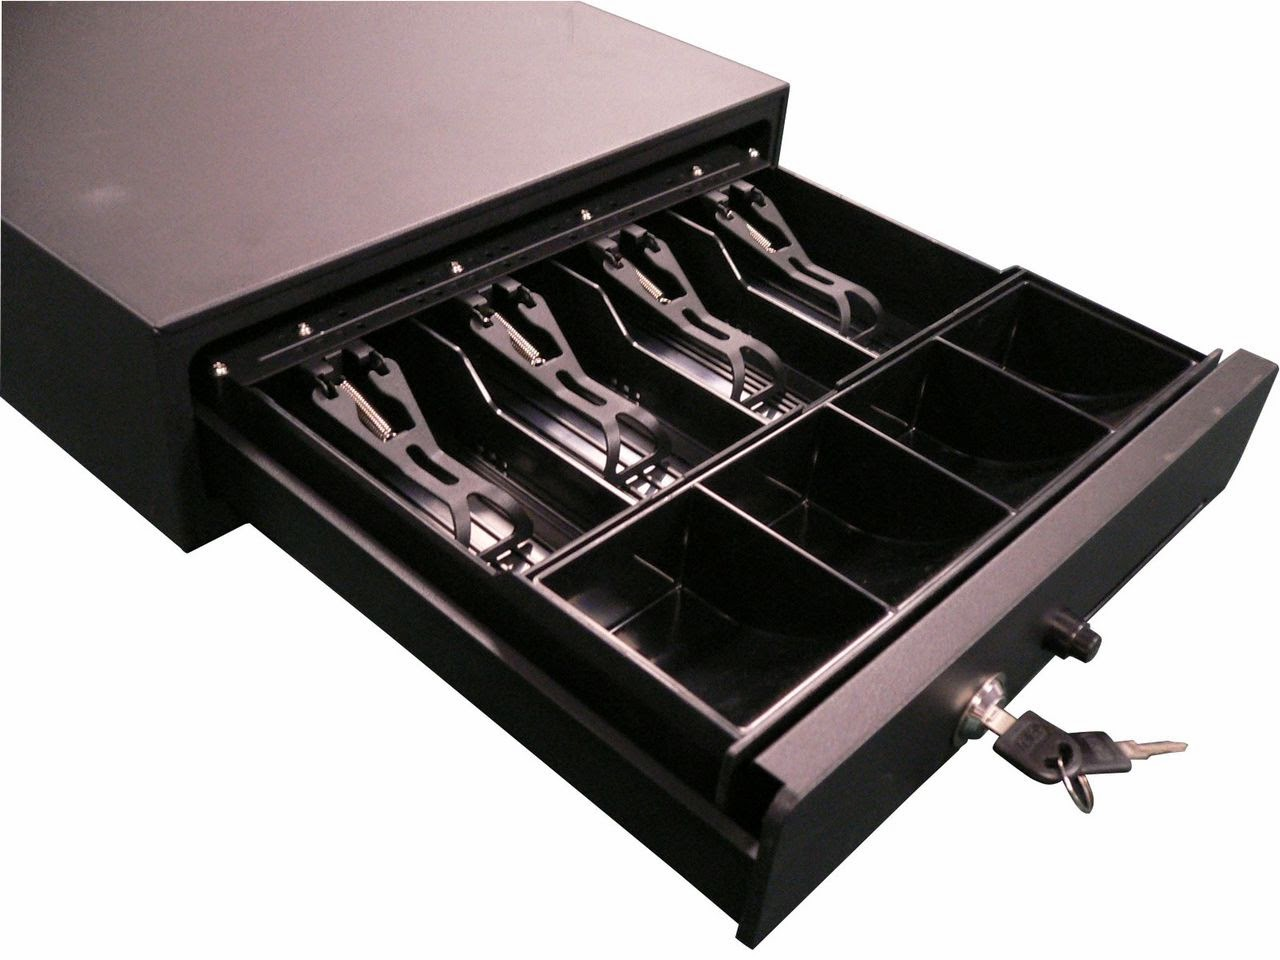 locking new drawers lock tray p cash safe money drawer key cantilever box compartment